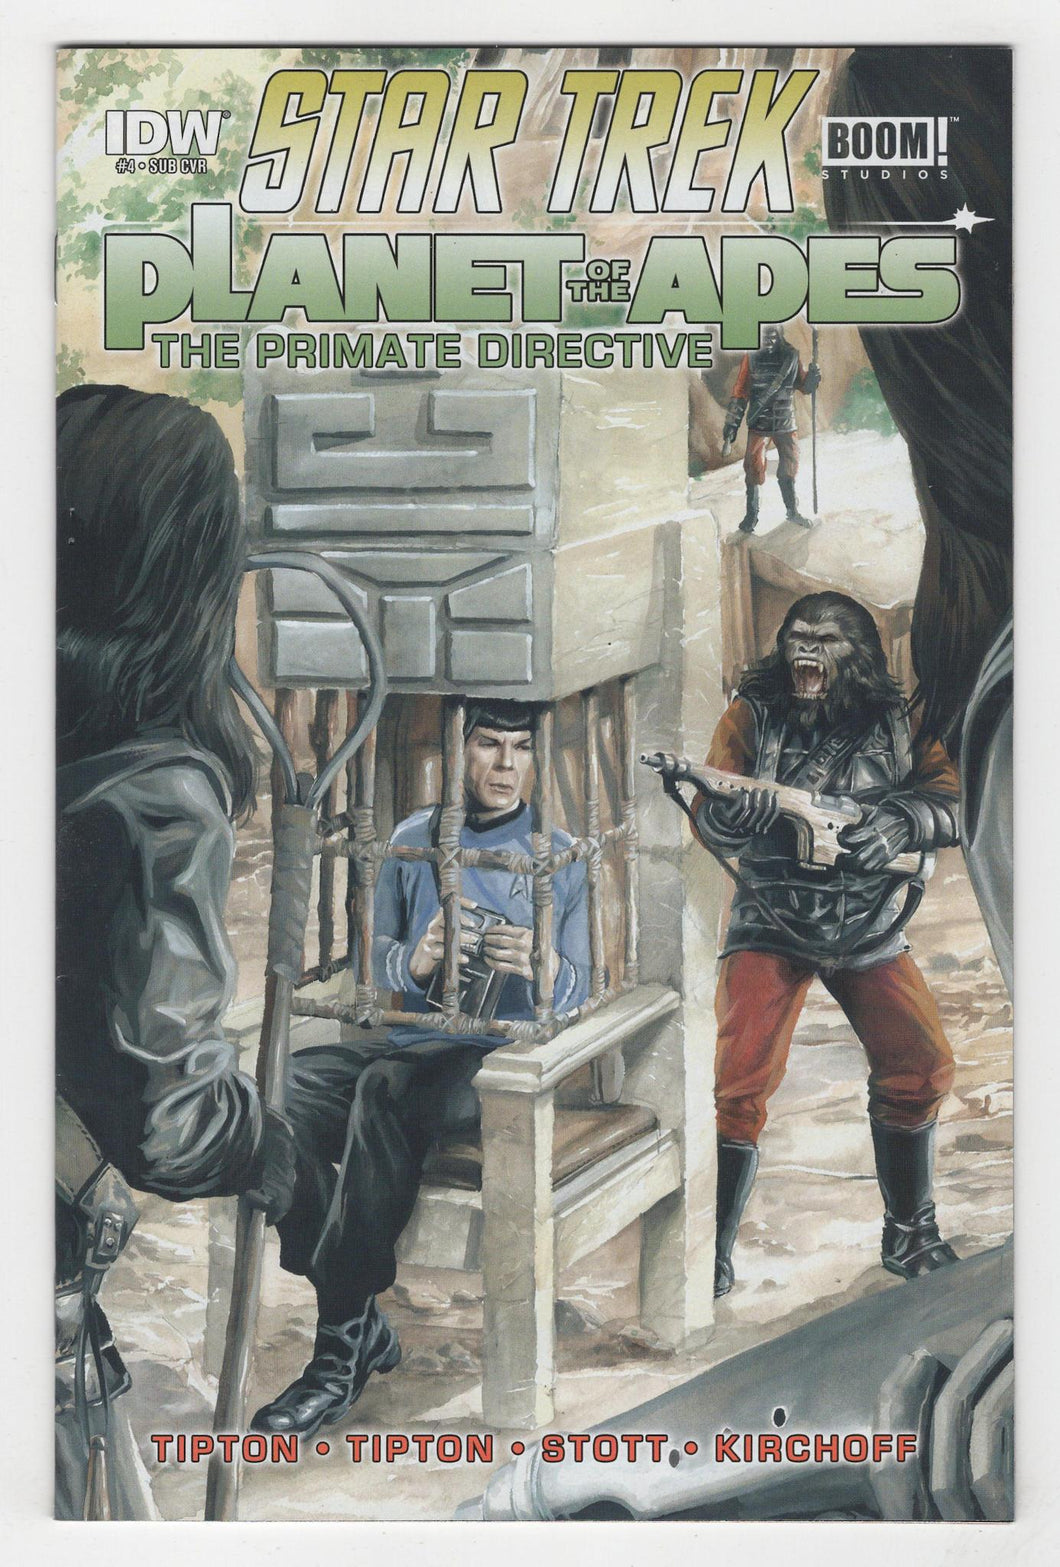 Star Trek Planet of the Apes the Prime Directive #4 Variant Cover Front